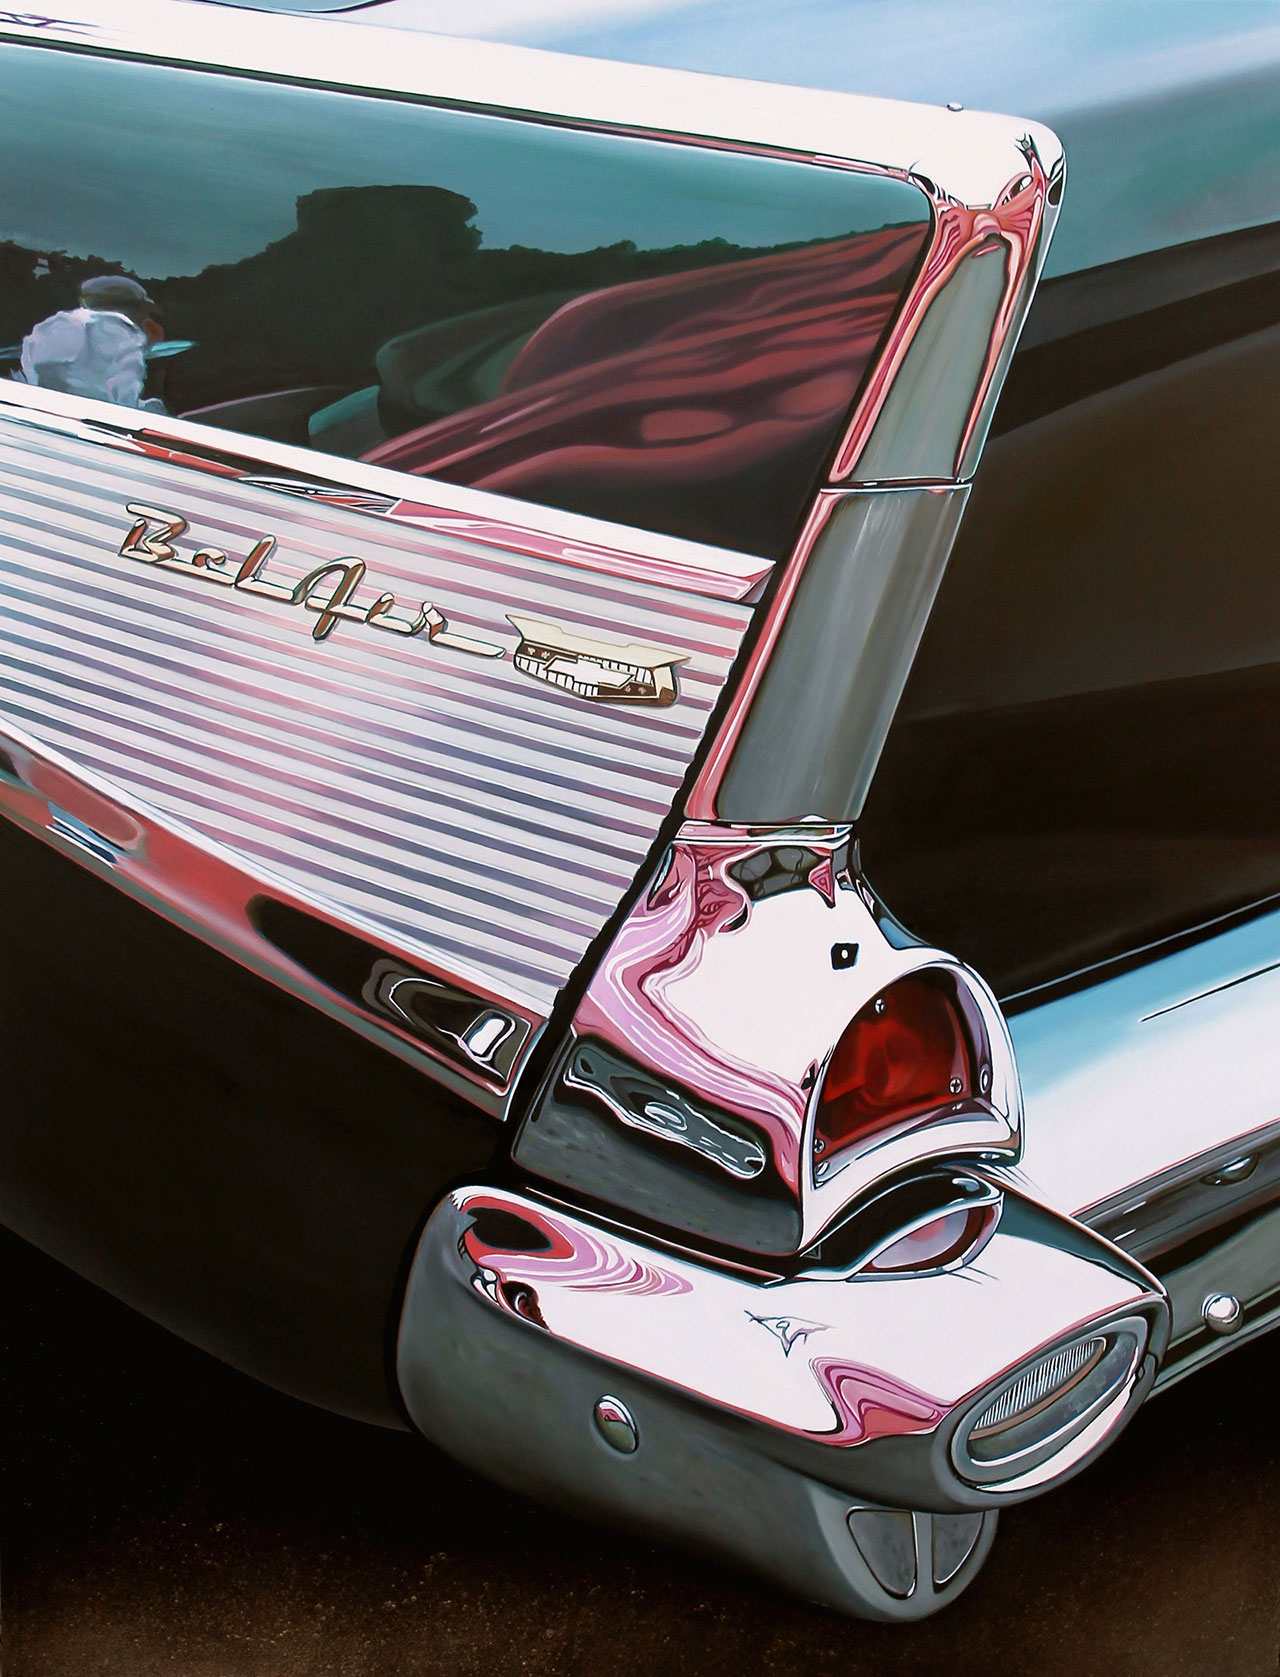 "Bel Air with Pink, 2013 oil on aluminum panel, 23 x 30""   © Cheryl Kelley, Courtesy of Bernarducci Meisel Gallery"